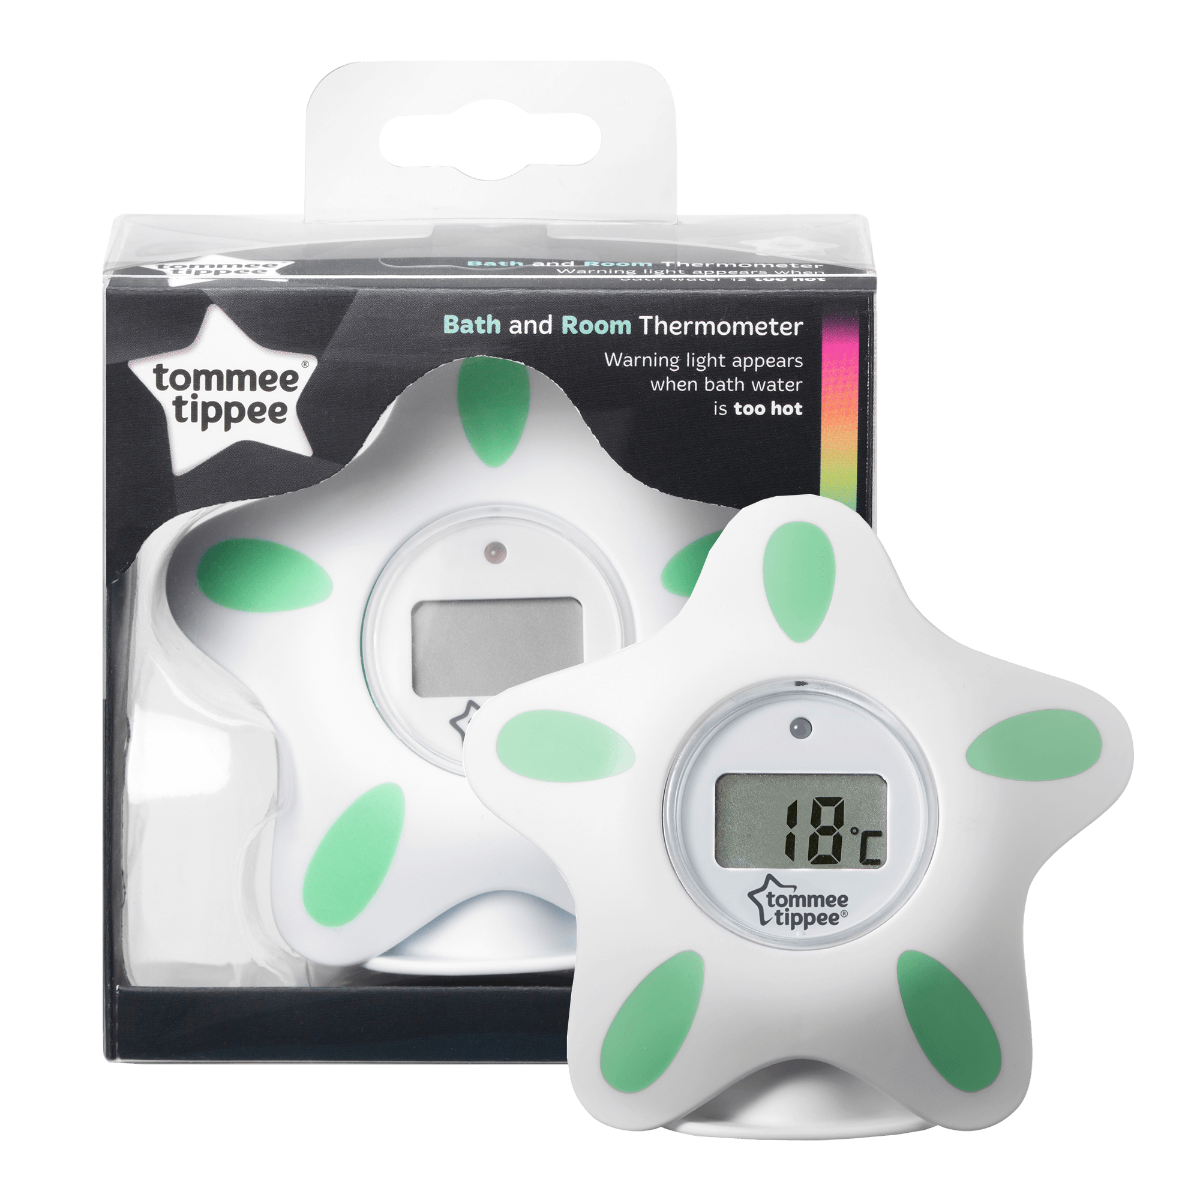 bath-and-room-thermometer-next-to-packaging